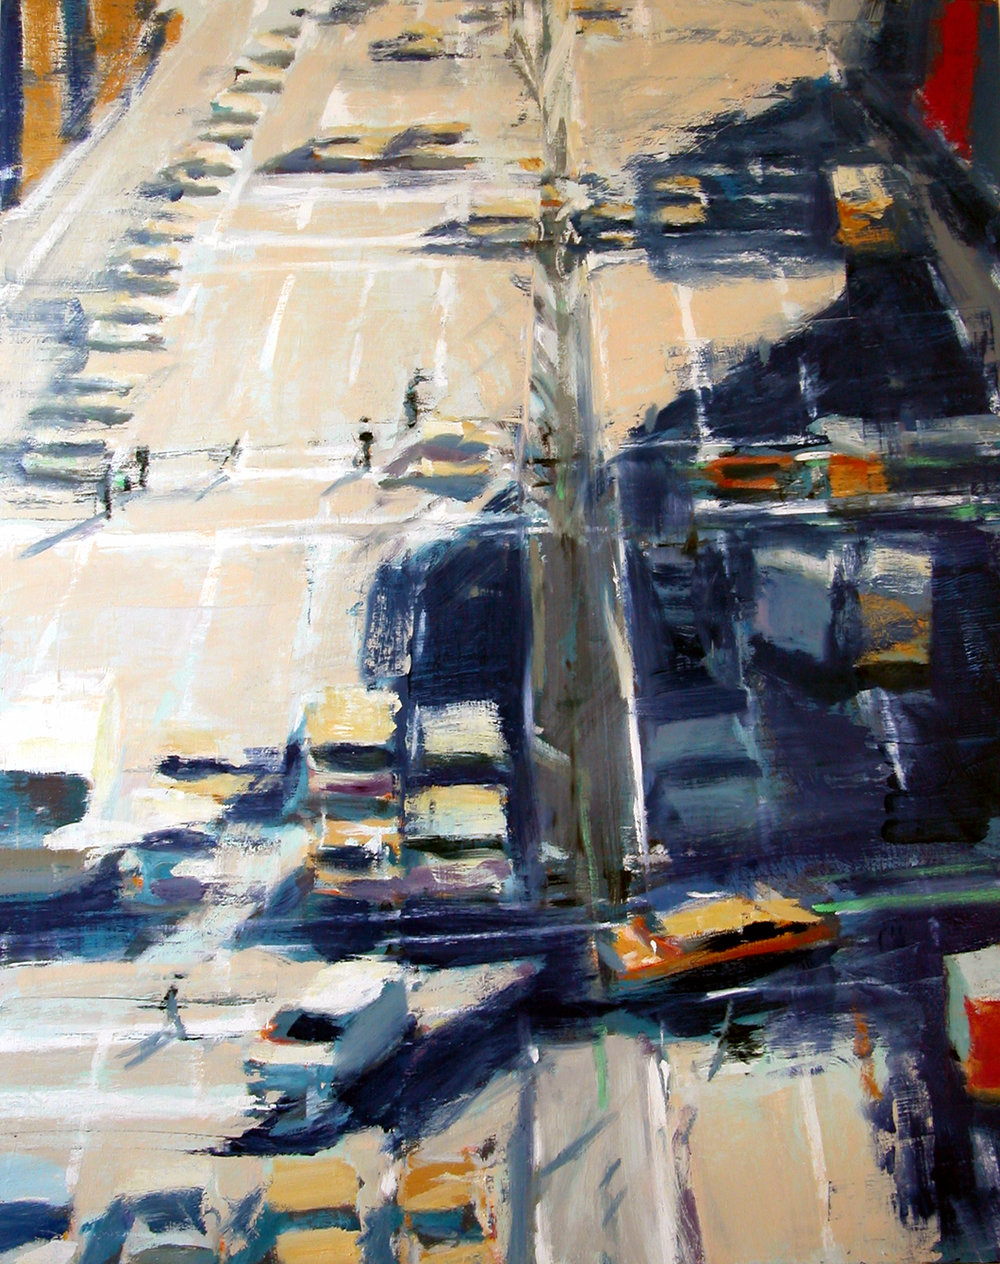 Houston Street , 2008 oil on canvas, 60 x 48 inches